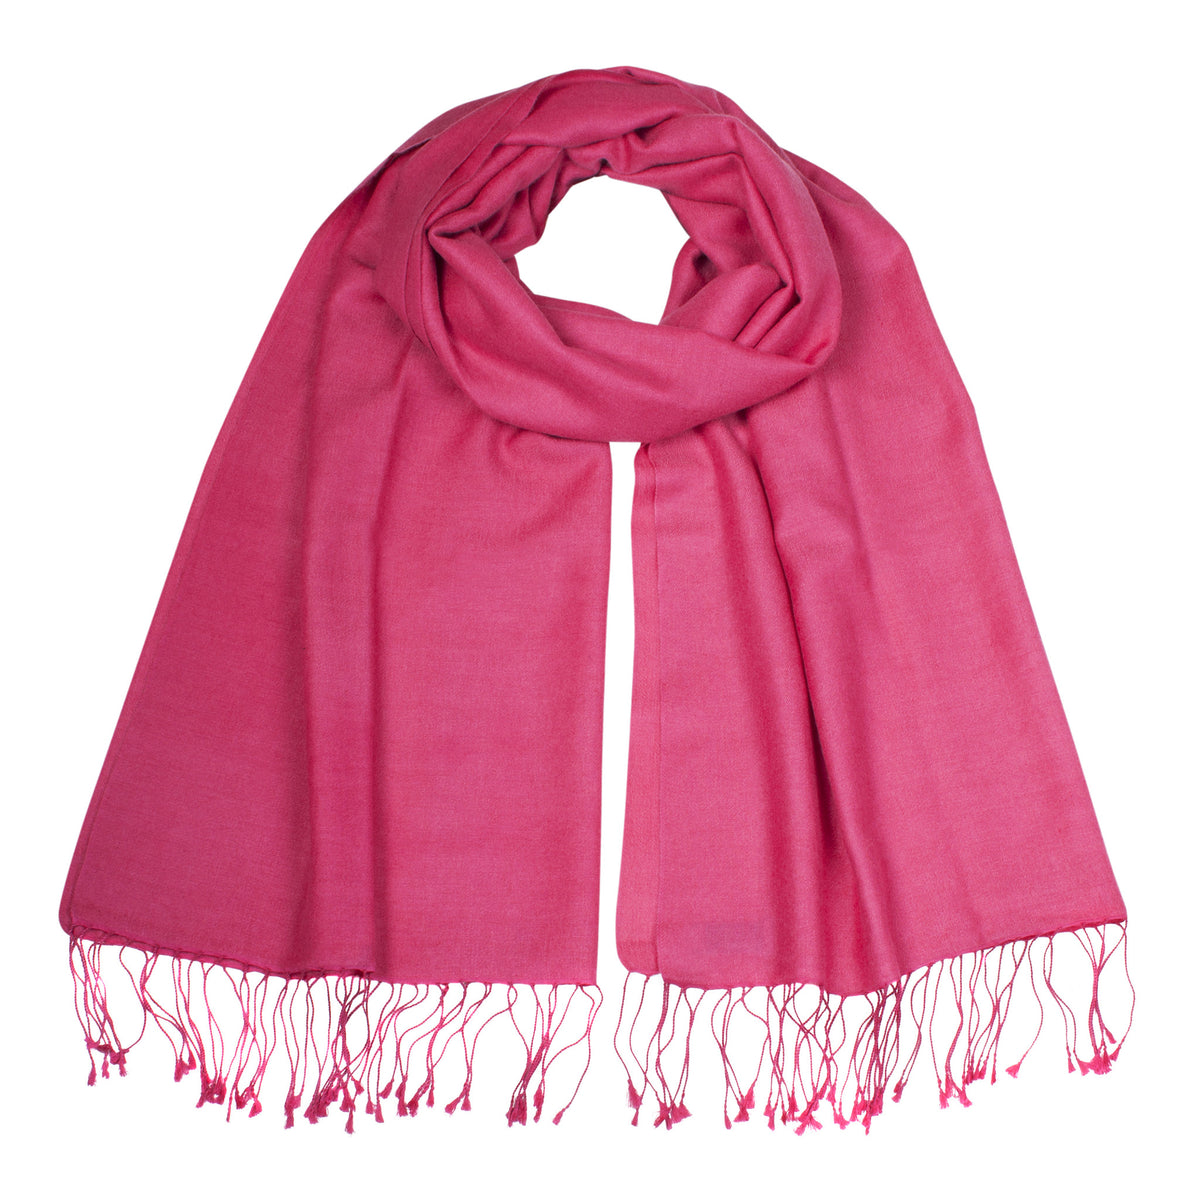 Hot Pink Pashsmina Stole | buy now at The Cashmere Choice London